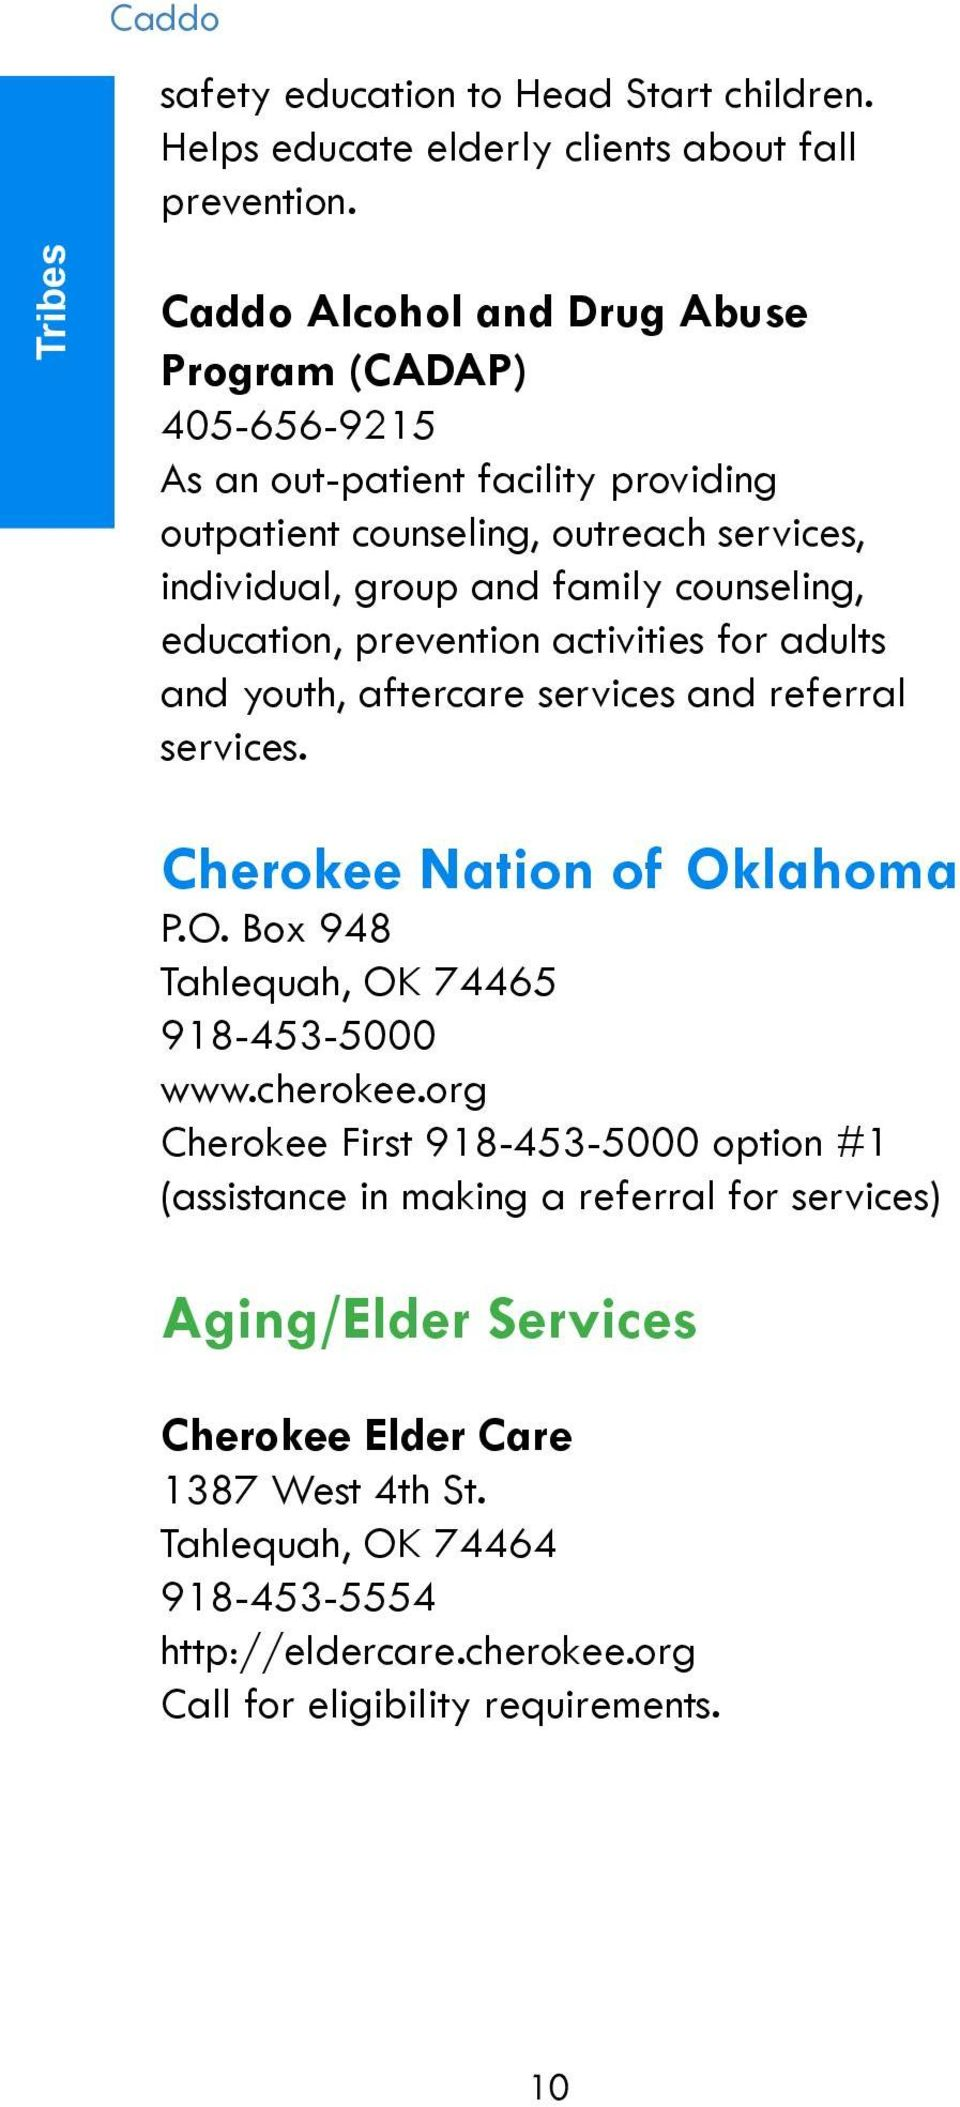 counseling, education, prevention activities for adults and youth, aftercare services and referral services. Cherokee Nation of Oklahoma P.O. Box 948 Tahlequah, OK 74465 918-453-5000 www.